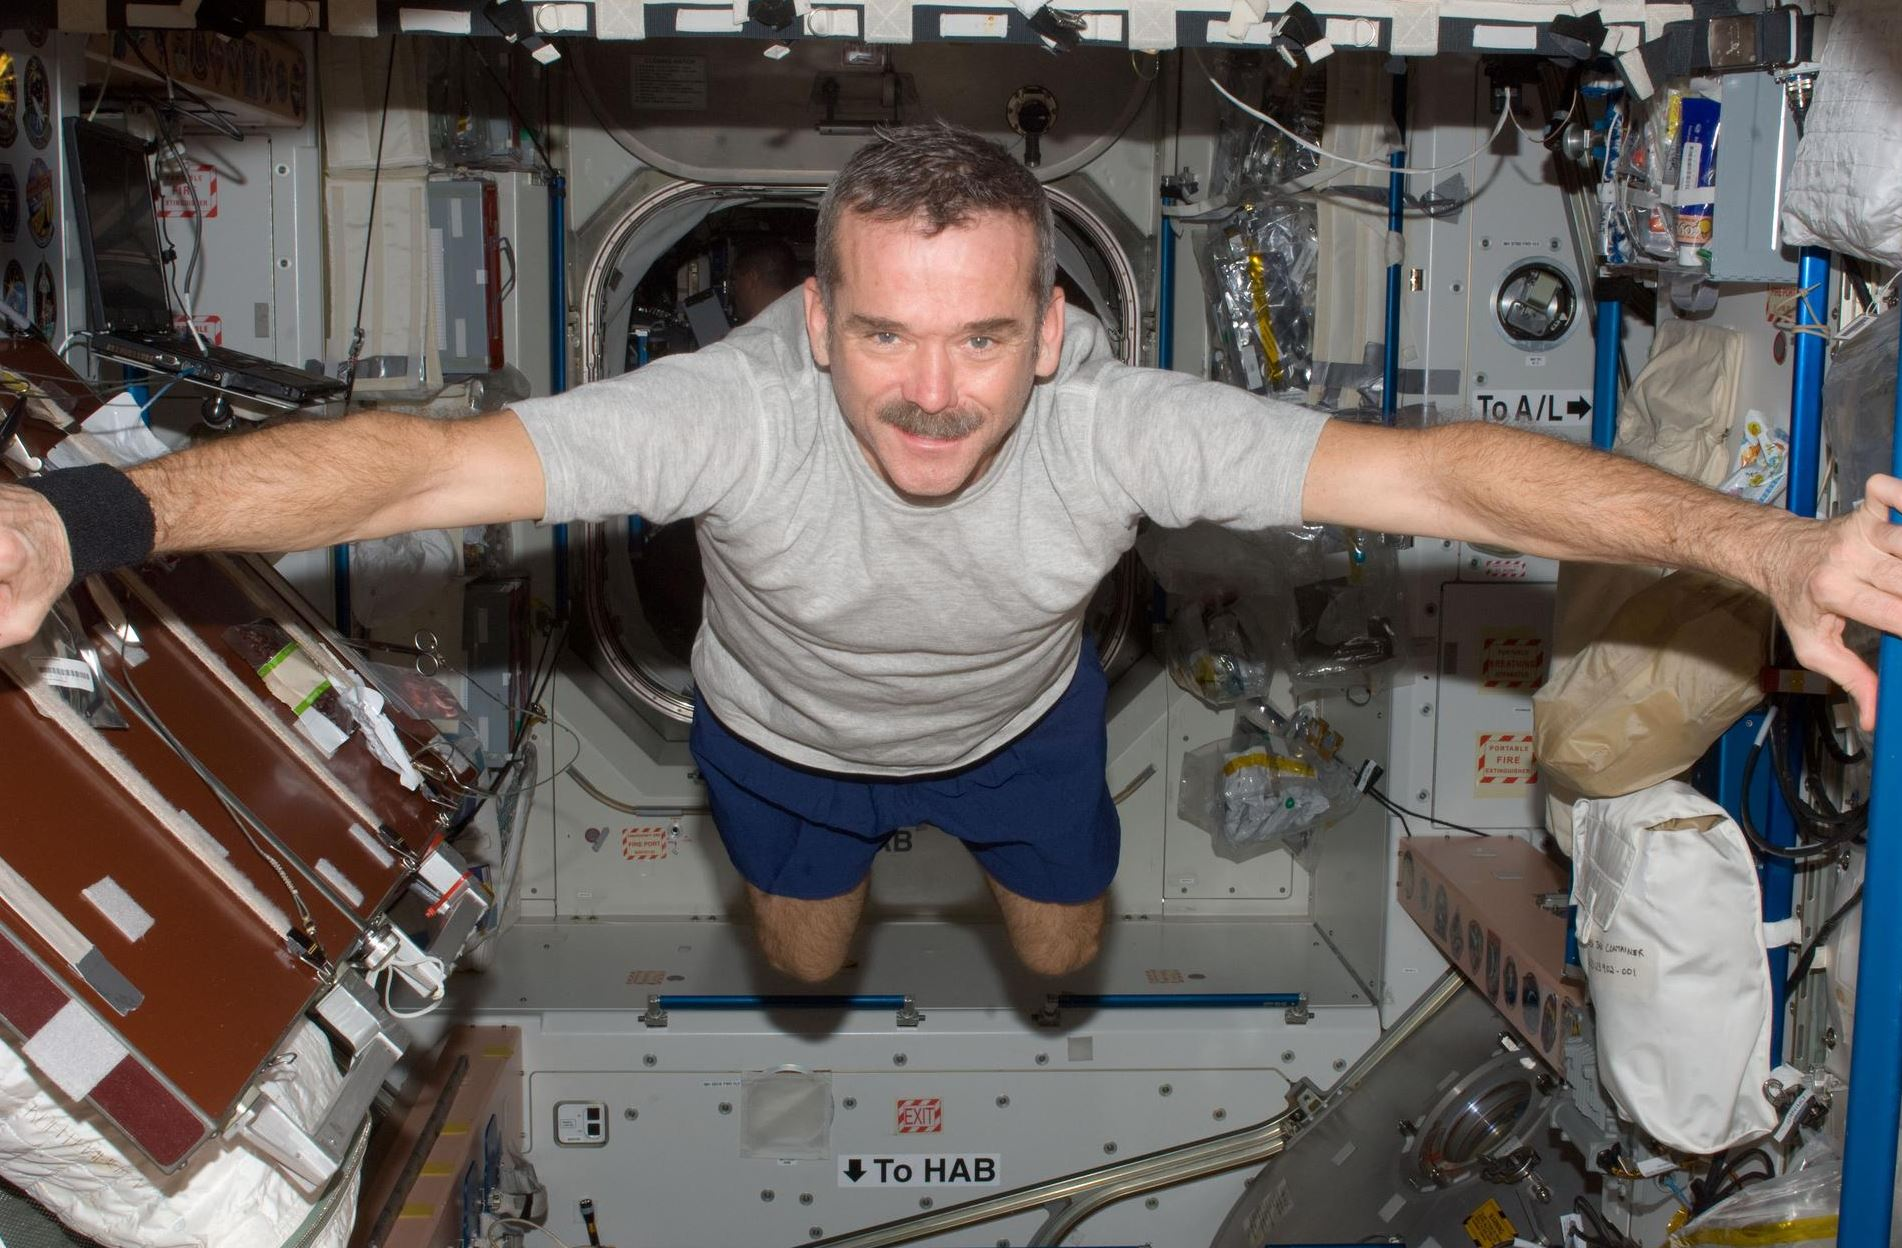 Canadian Space Agency astronaut Chris Hadfield on the International Space Station in 2012. - Image Credit:  NASA